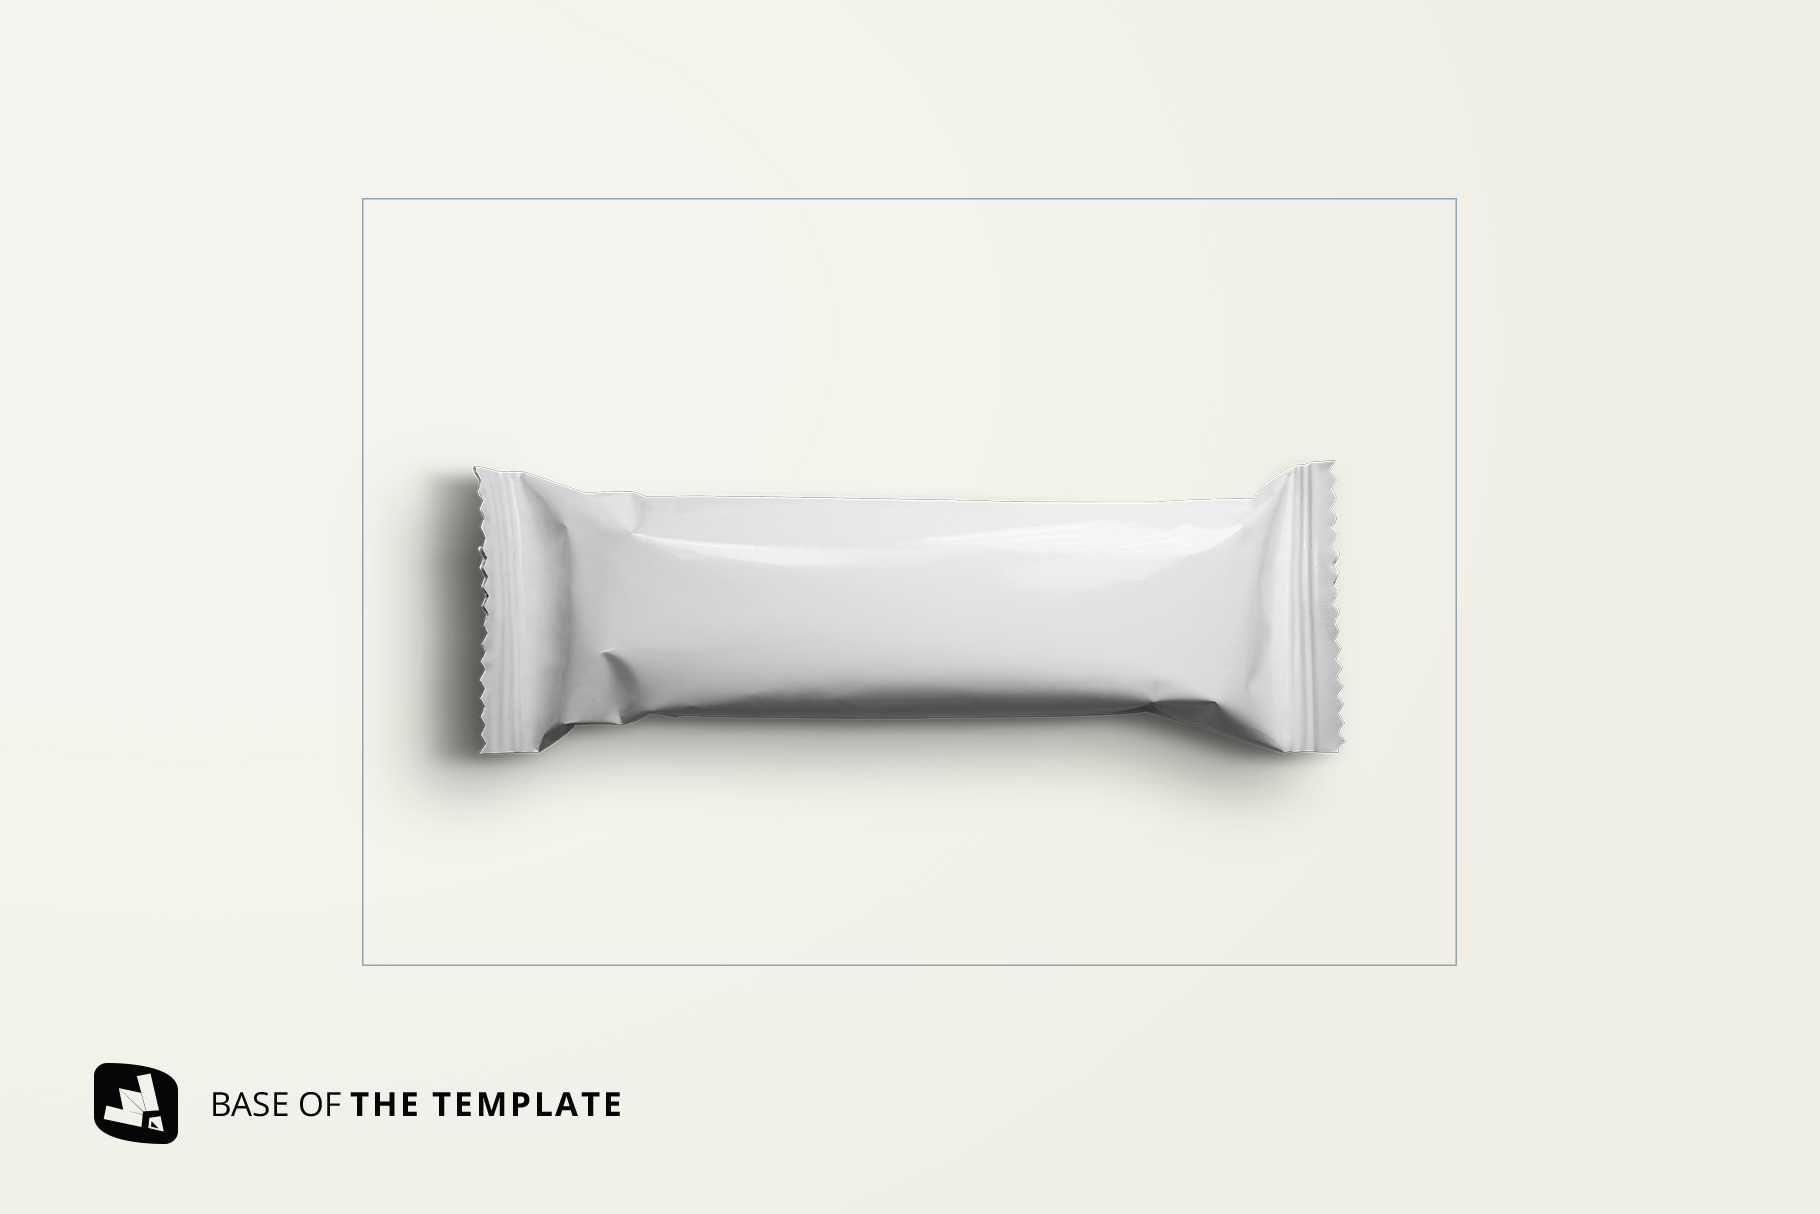 base image of the top view organic snack bar packaging mockup